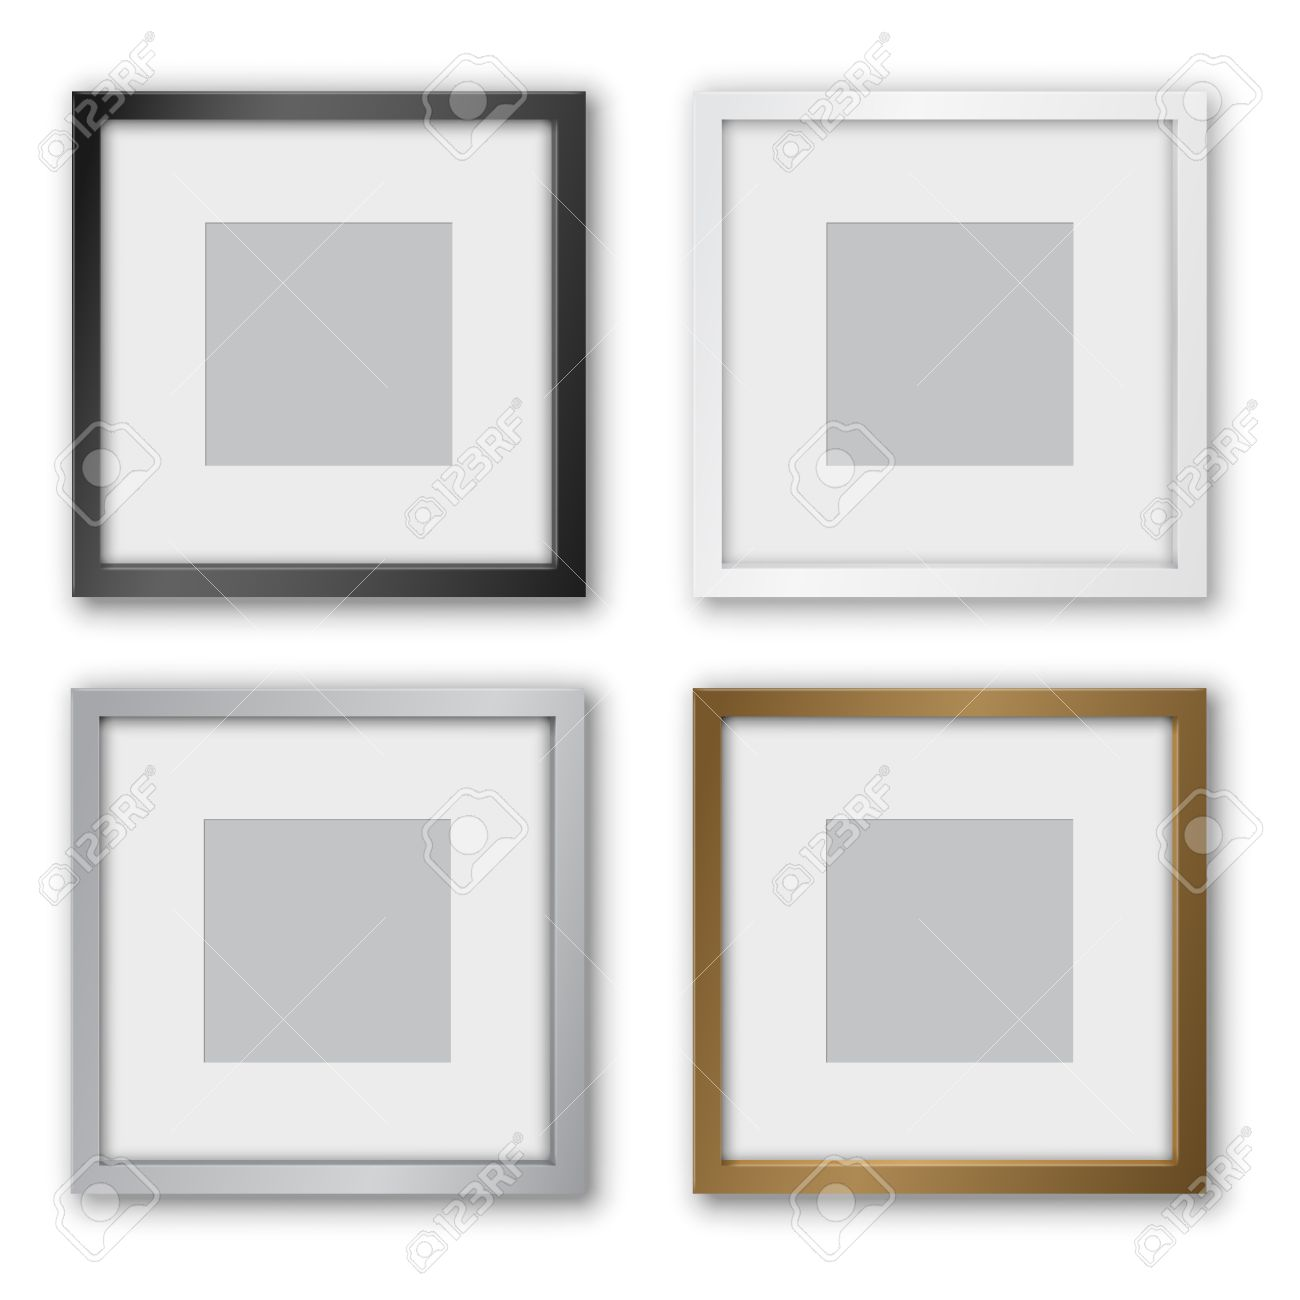 Square Format Black Silver And Gold Frames Design With Thin